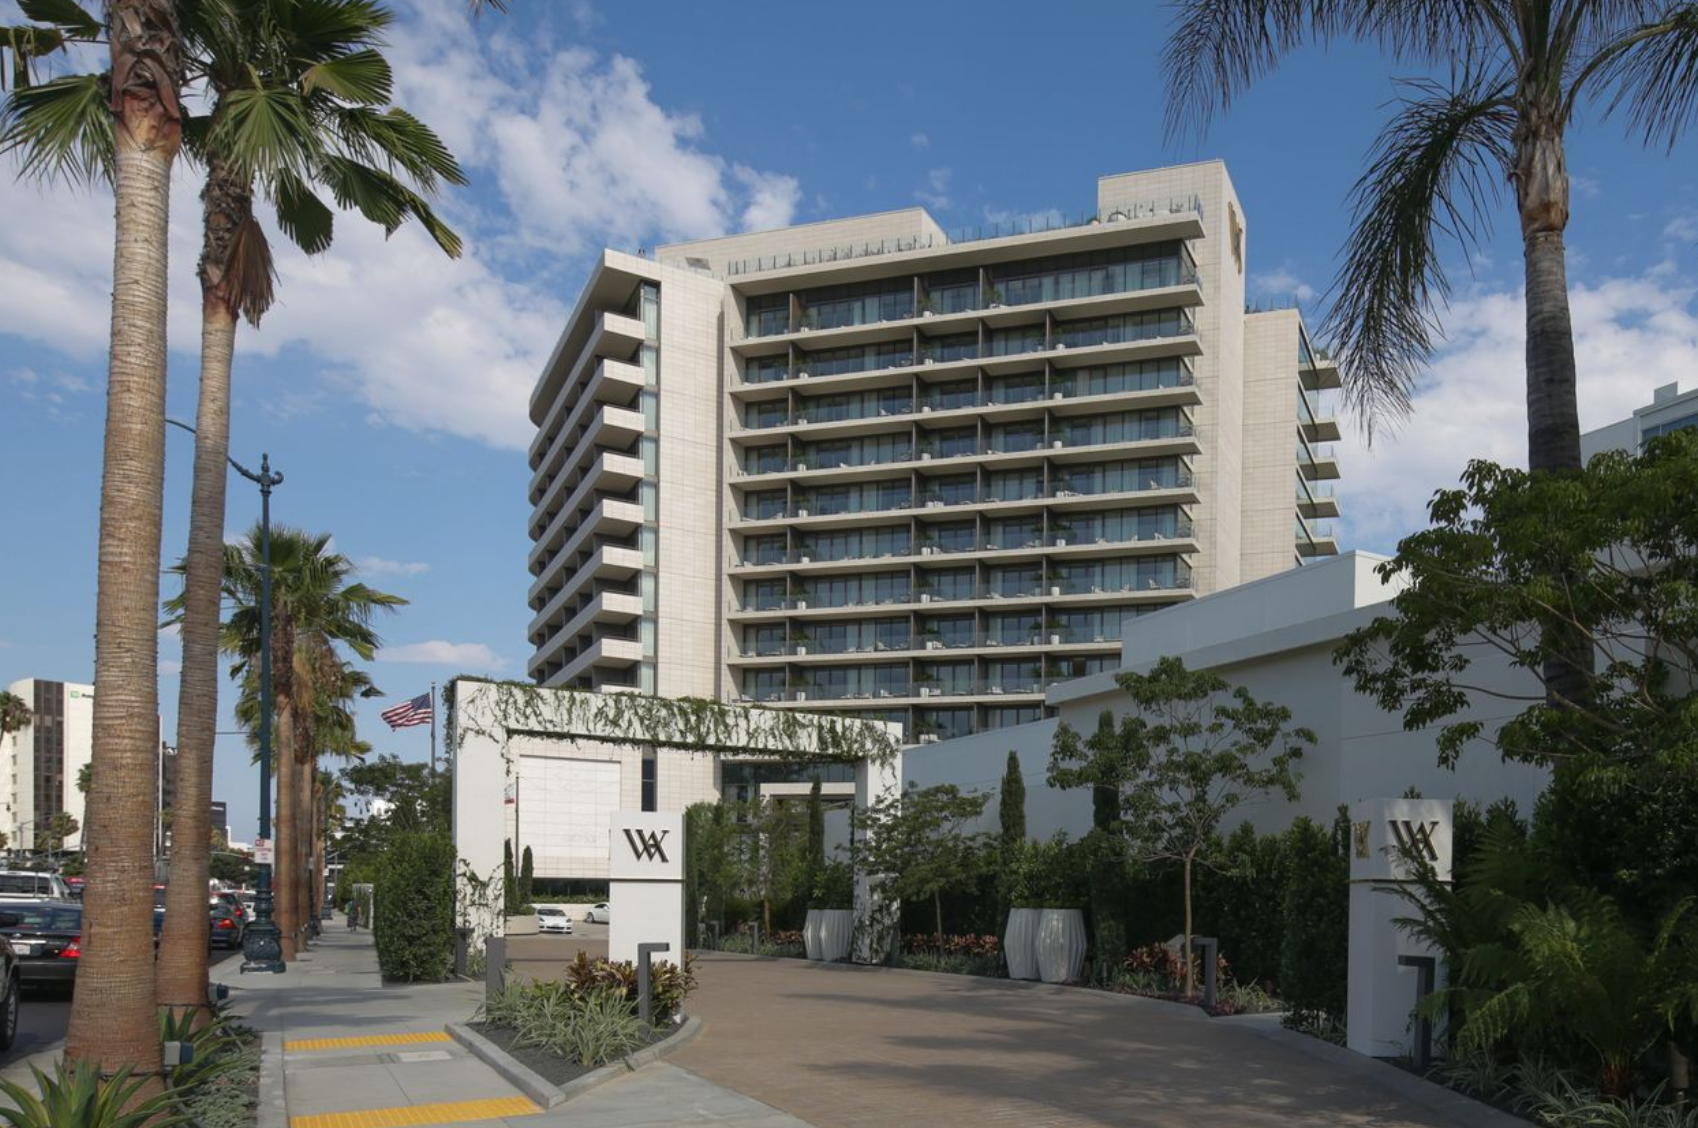 Hilton's Waldorf Beverly Hills Used A Spy To Steal Secrets From Rival, Lawsuit Says